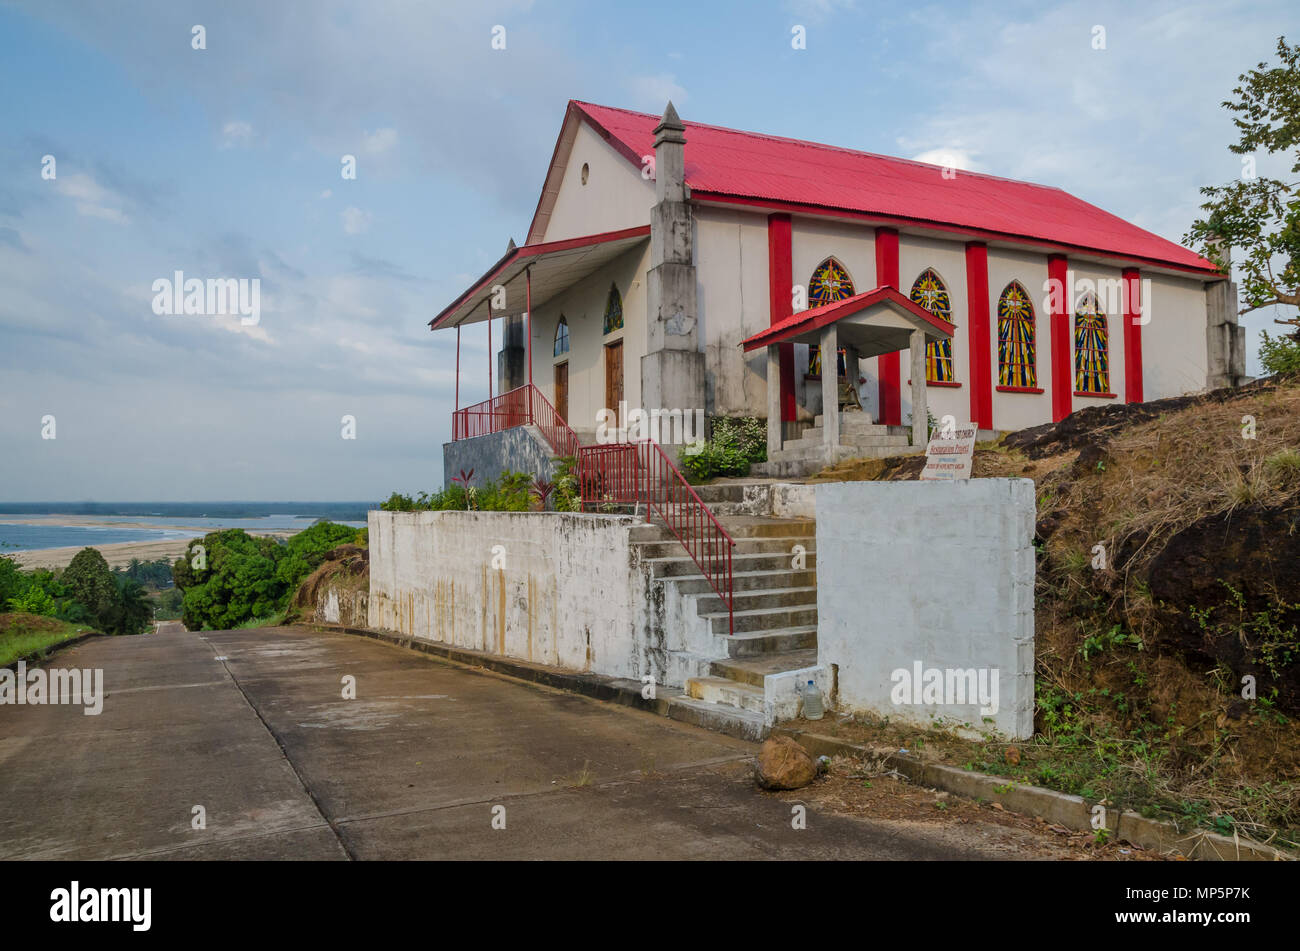 Mount Zion Baptist Church on top of hill with road leading to ocean - Stock Image